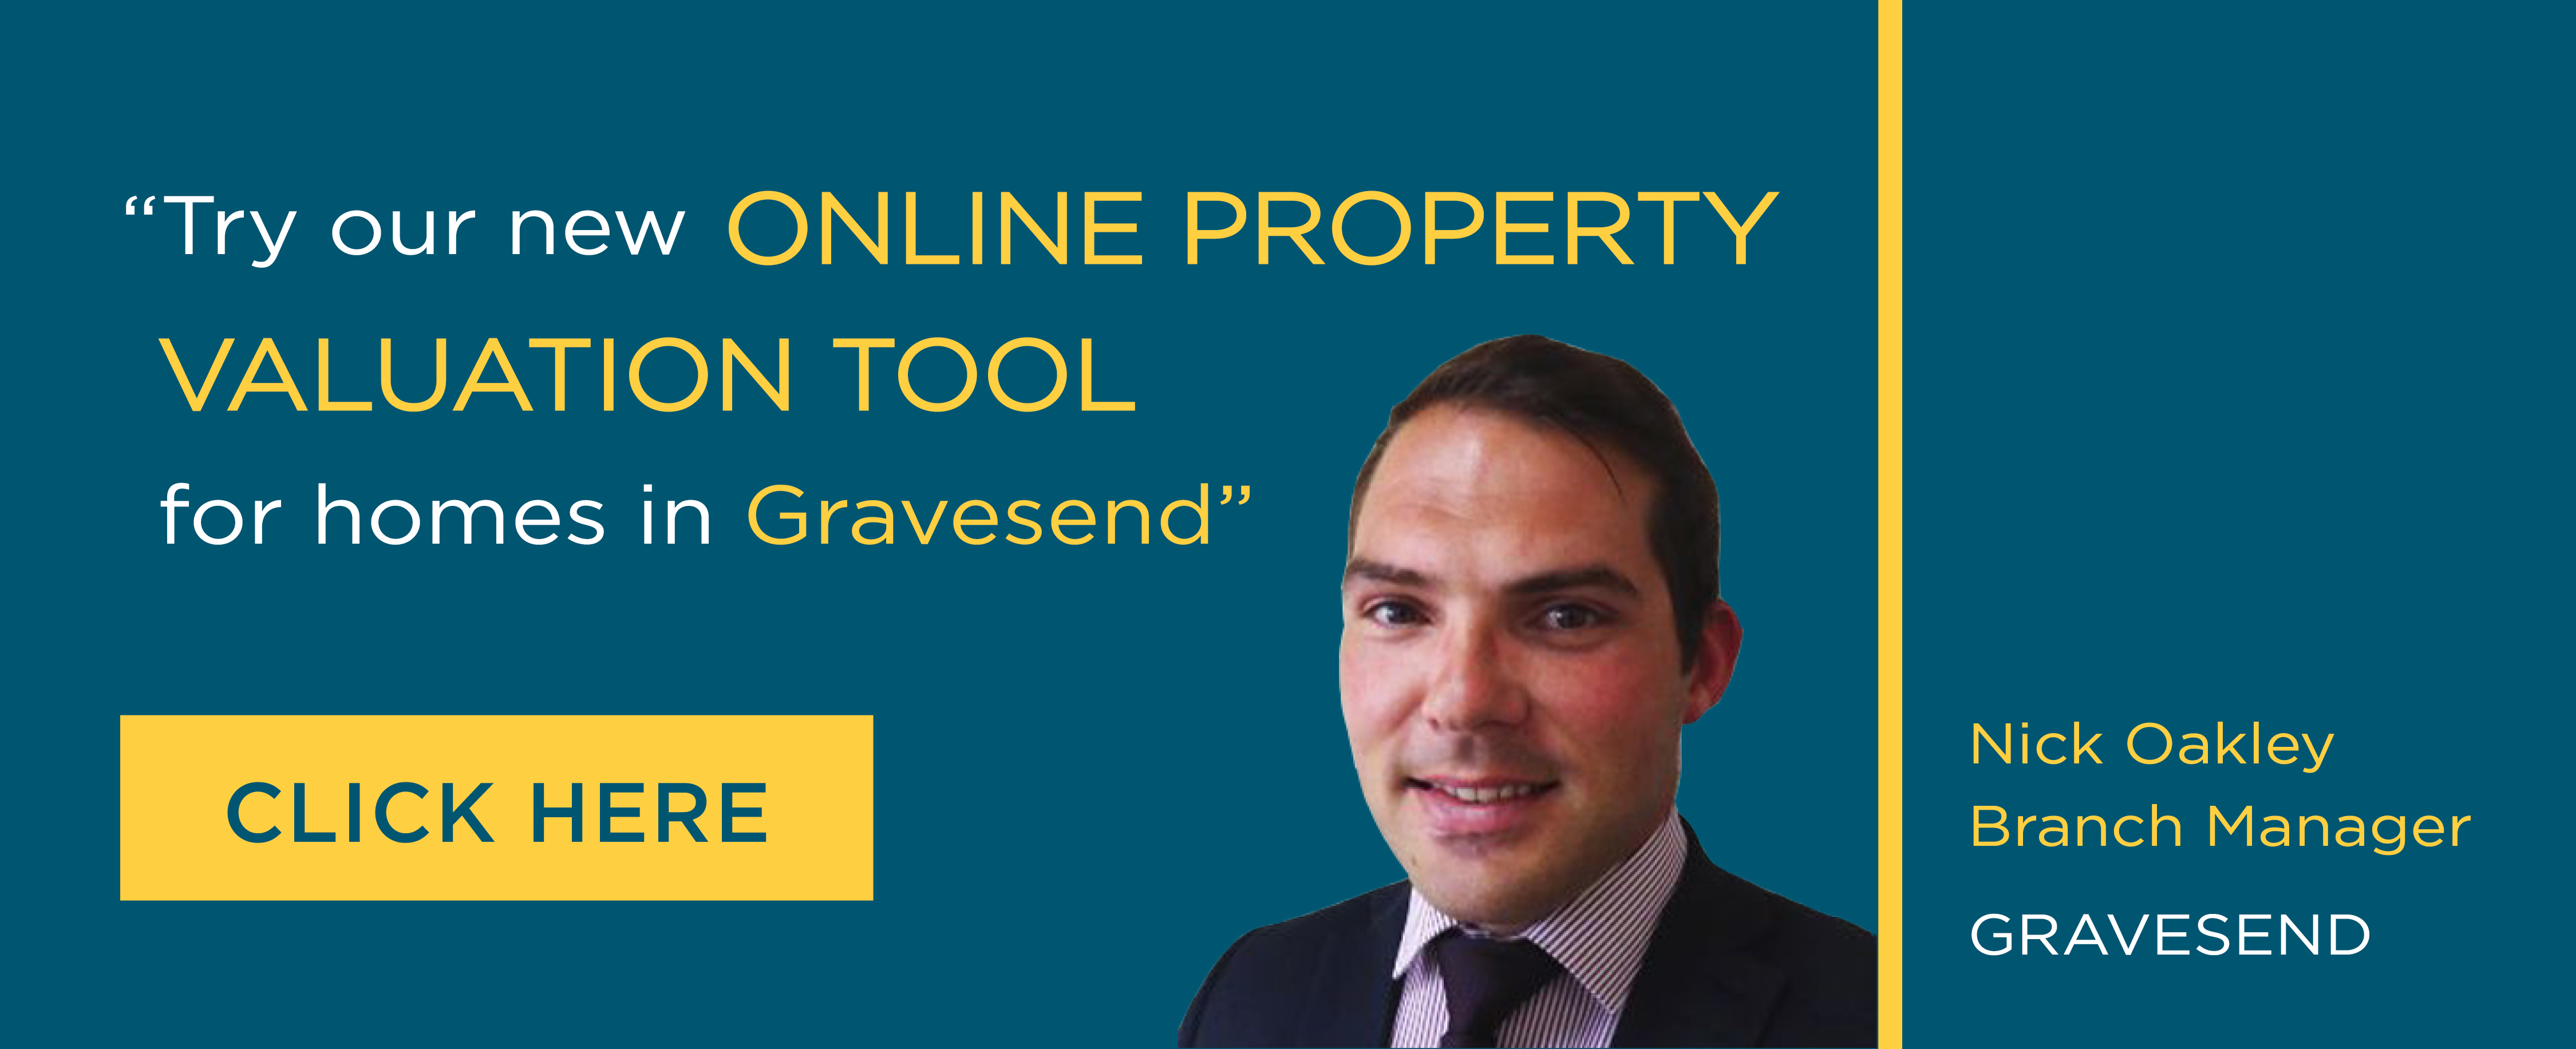 Online Valuation Tool website banner Gravesend